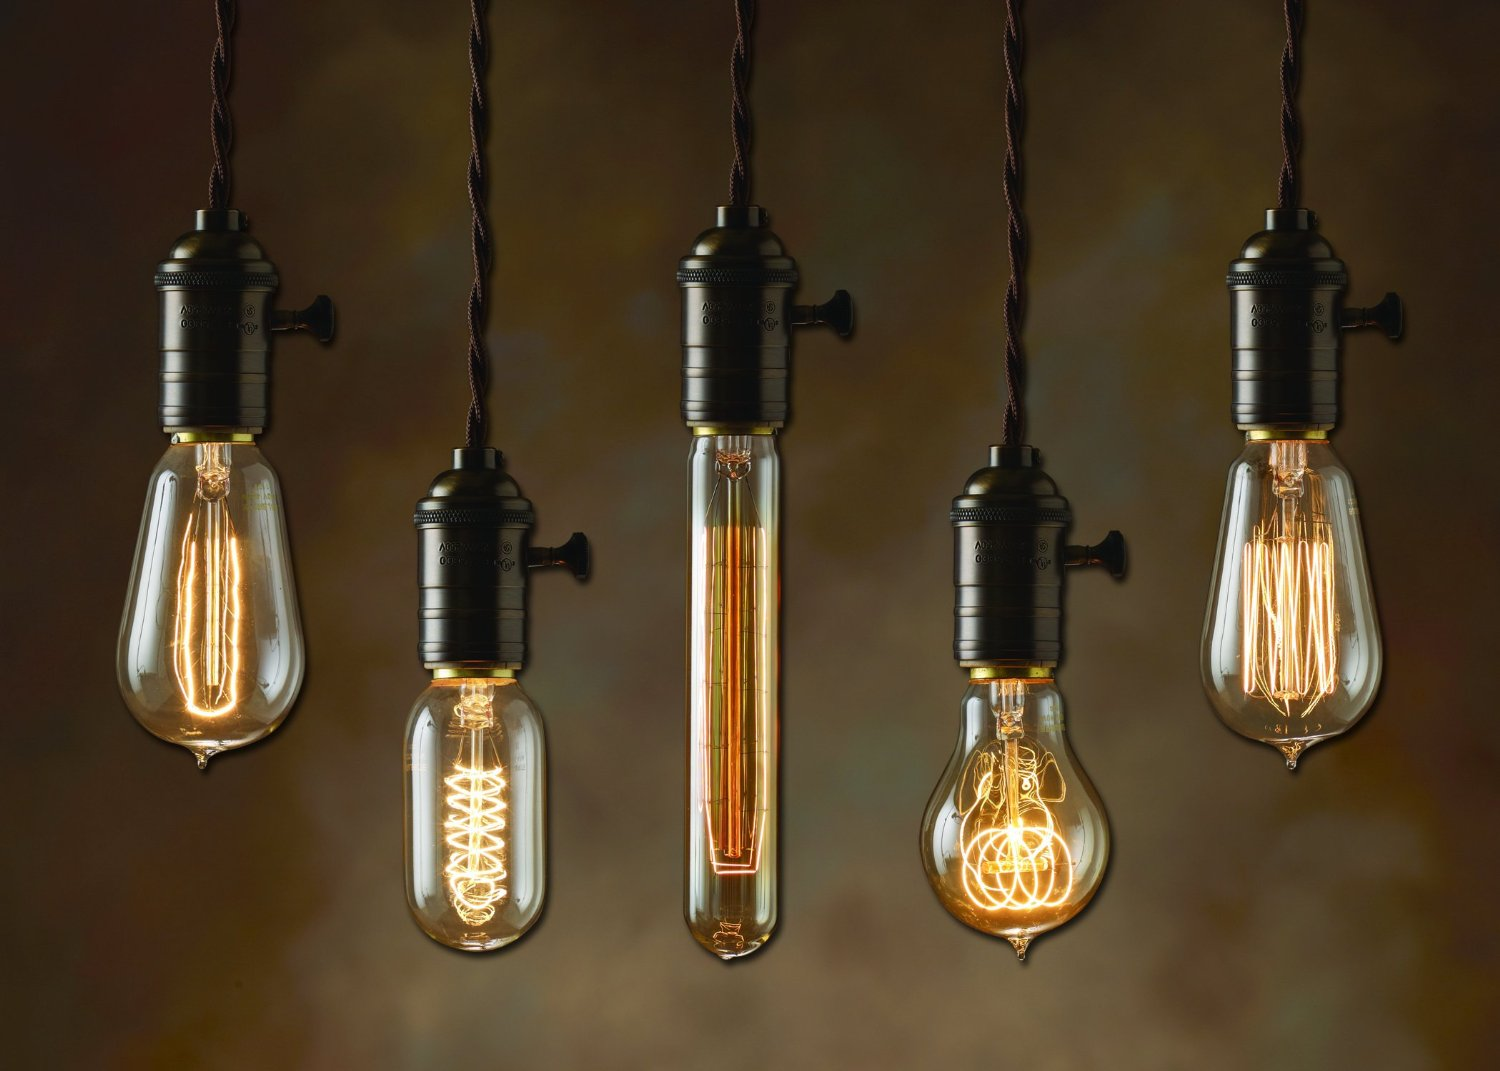 edison-lamps-photo-10